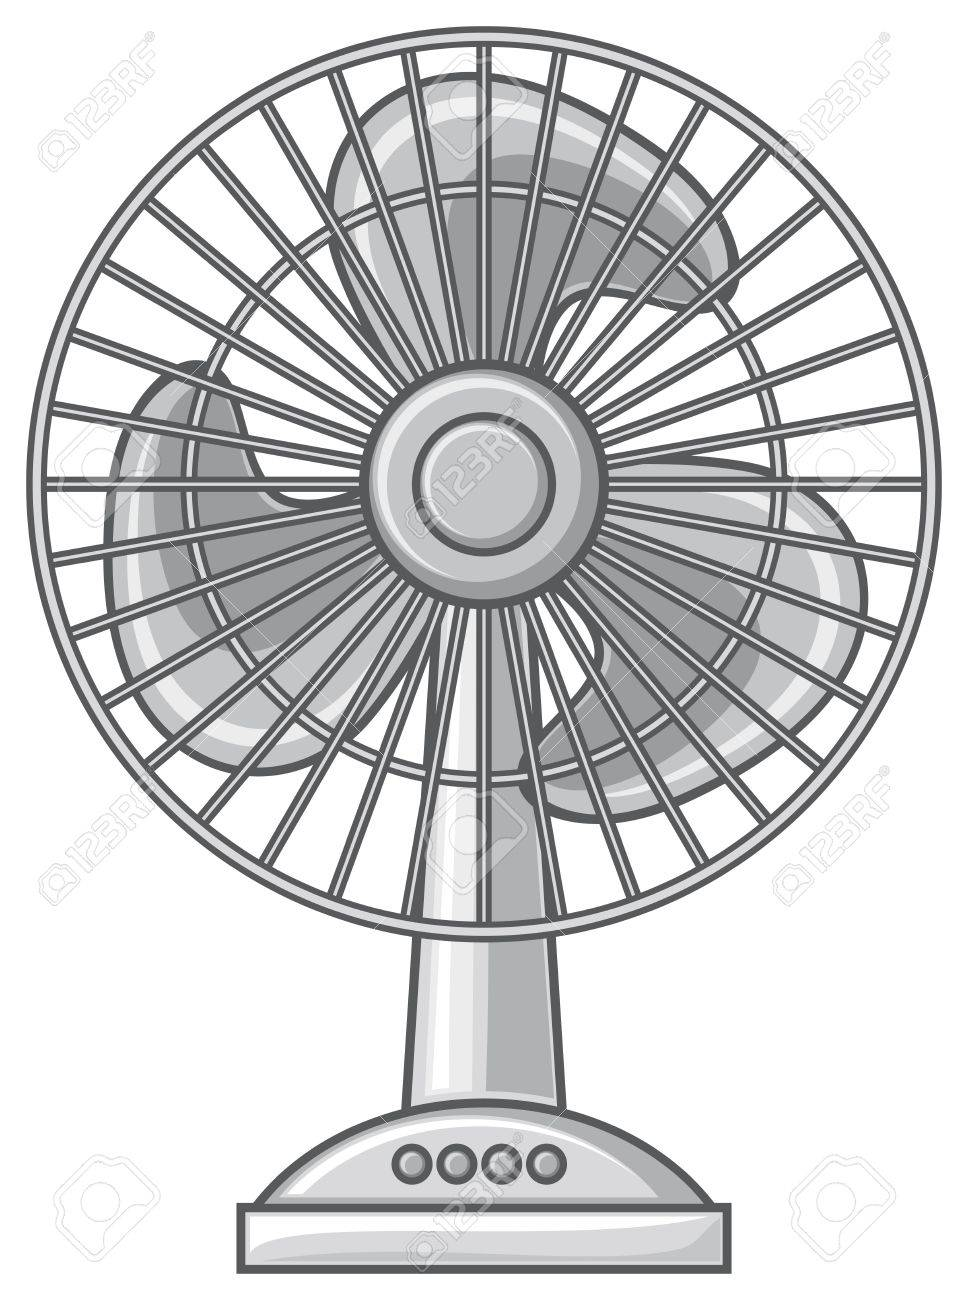 968x1300 Table Fan (Fan For The Home And Office, Electric Fan) Royalty Free